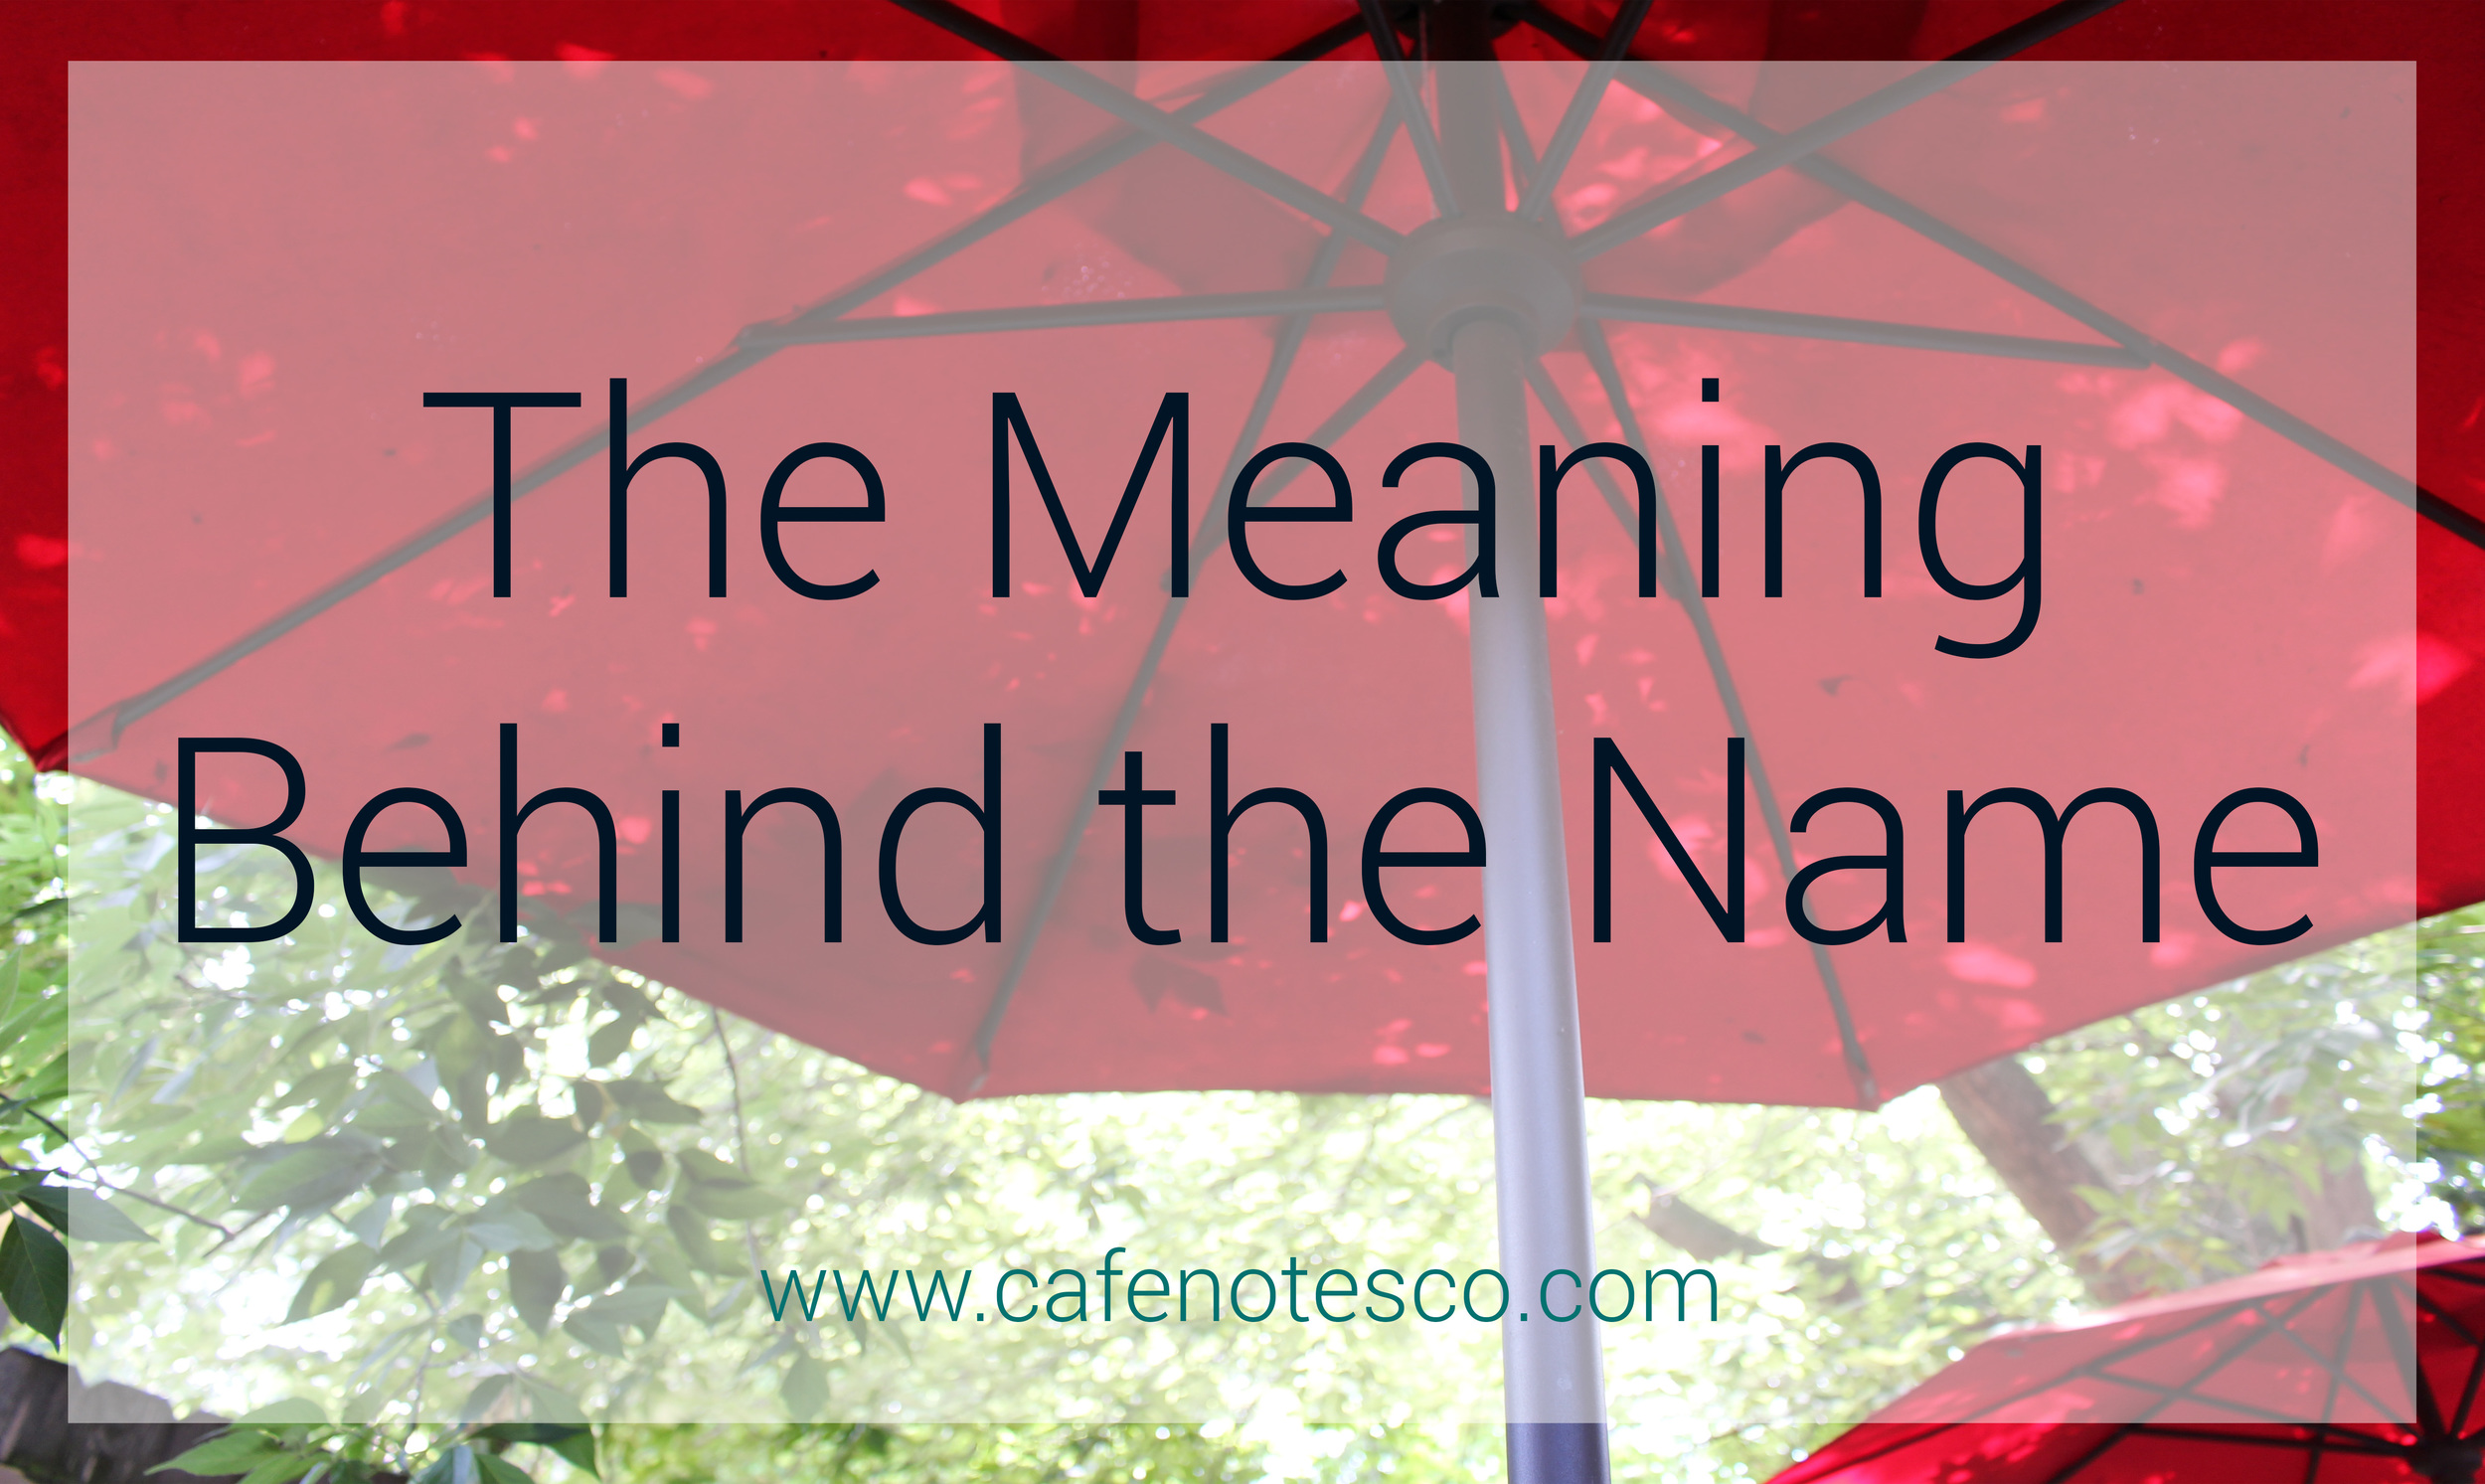 Cafe Notes + Company Blog Meaning Behind the Name